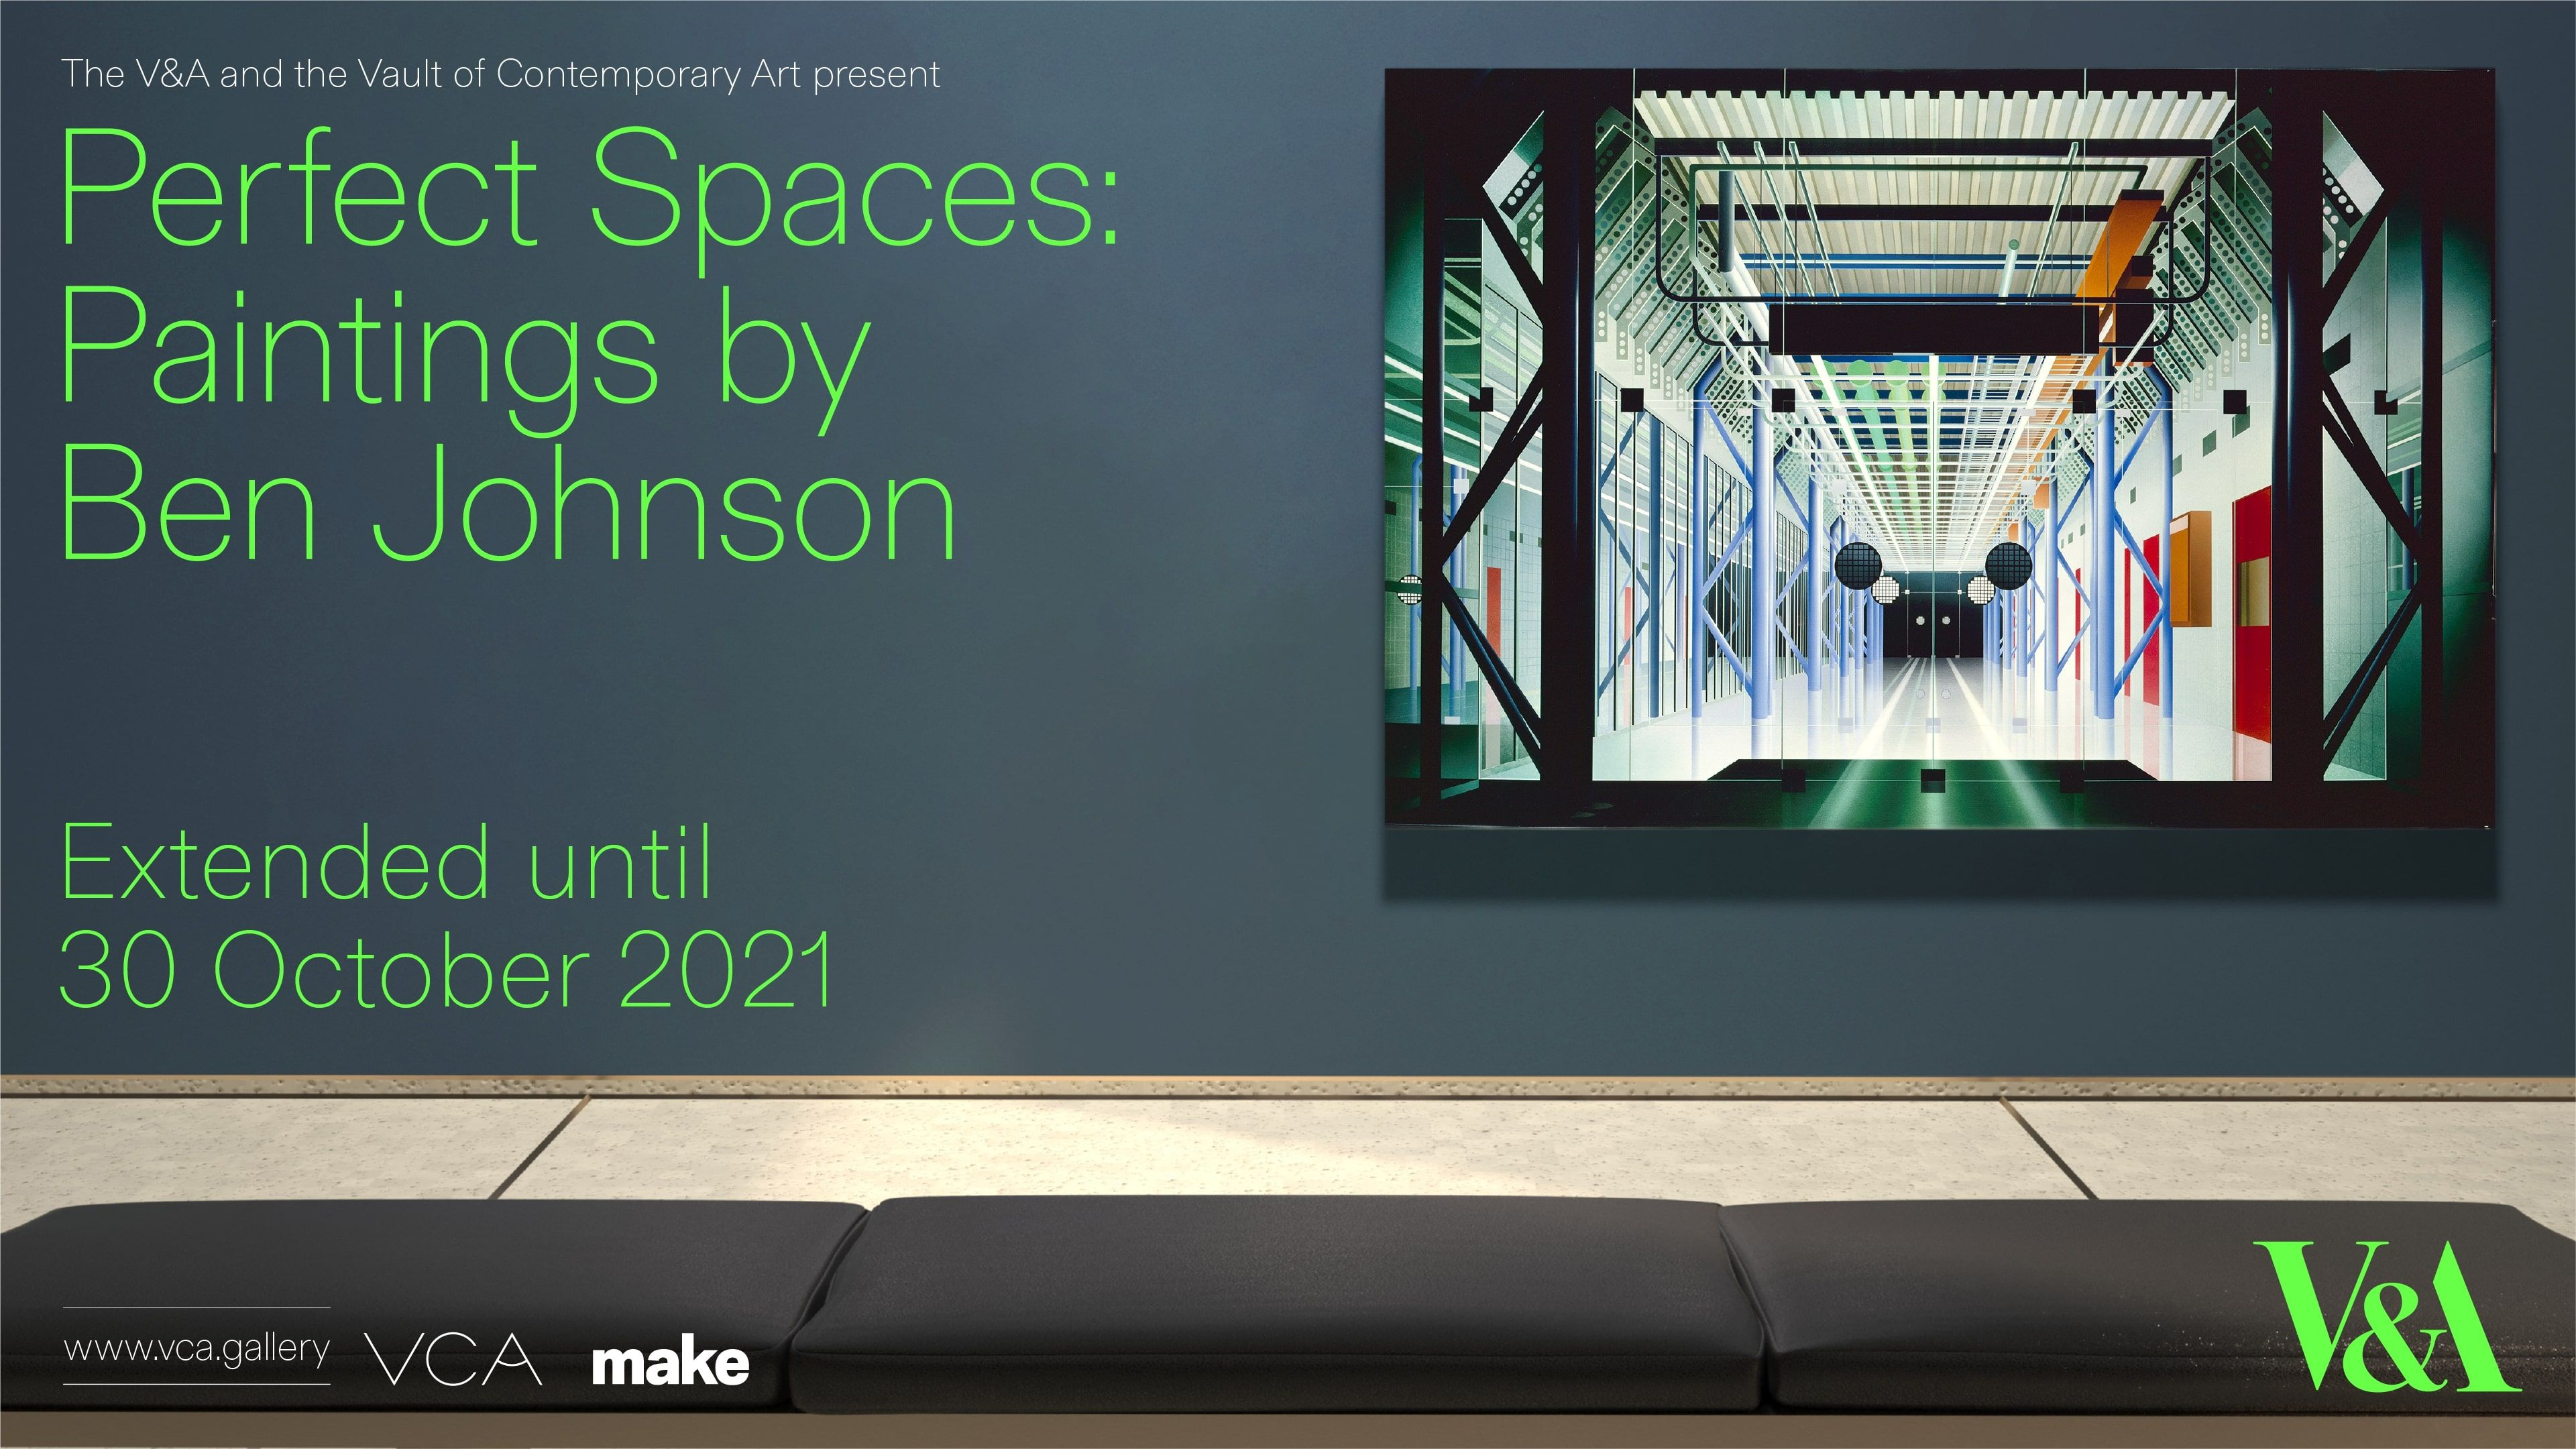 Perfect Spaces: Paintings by Ben Johnson